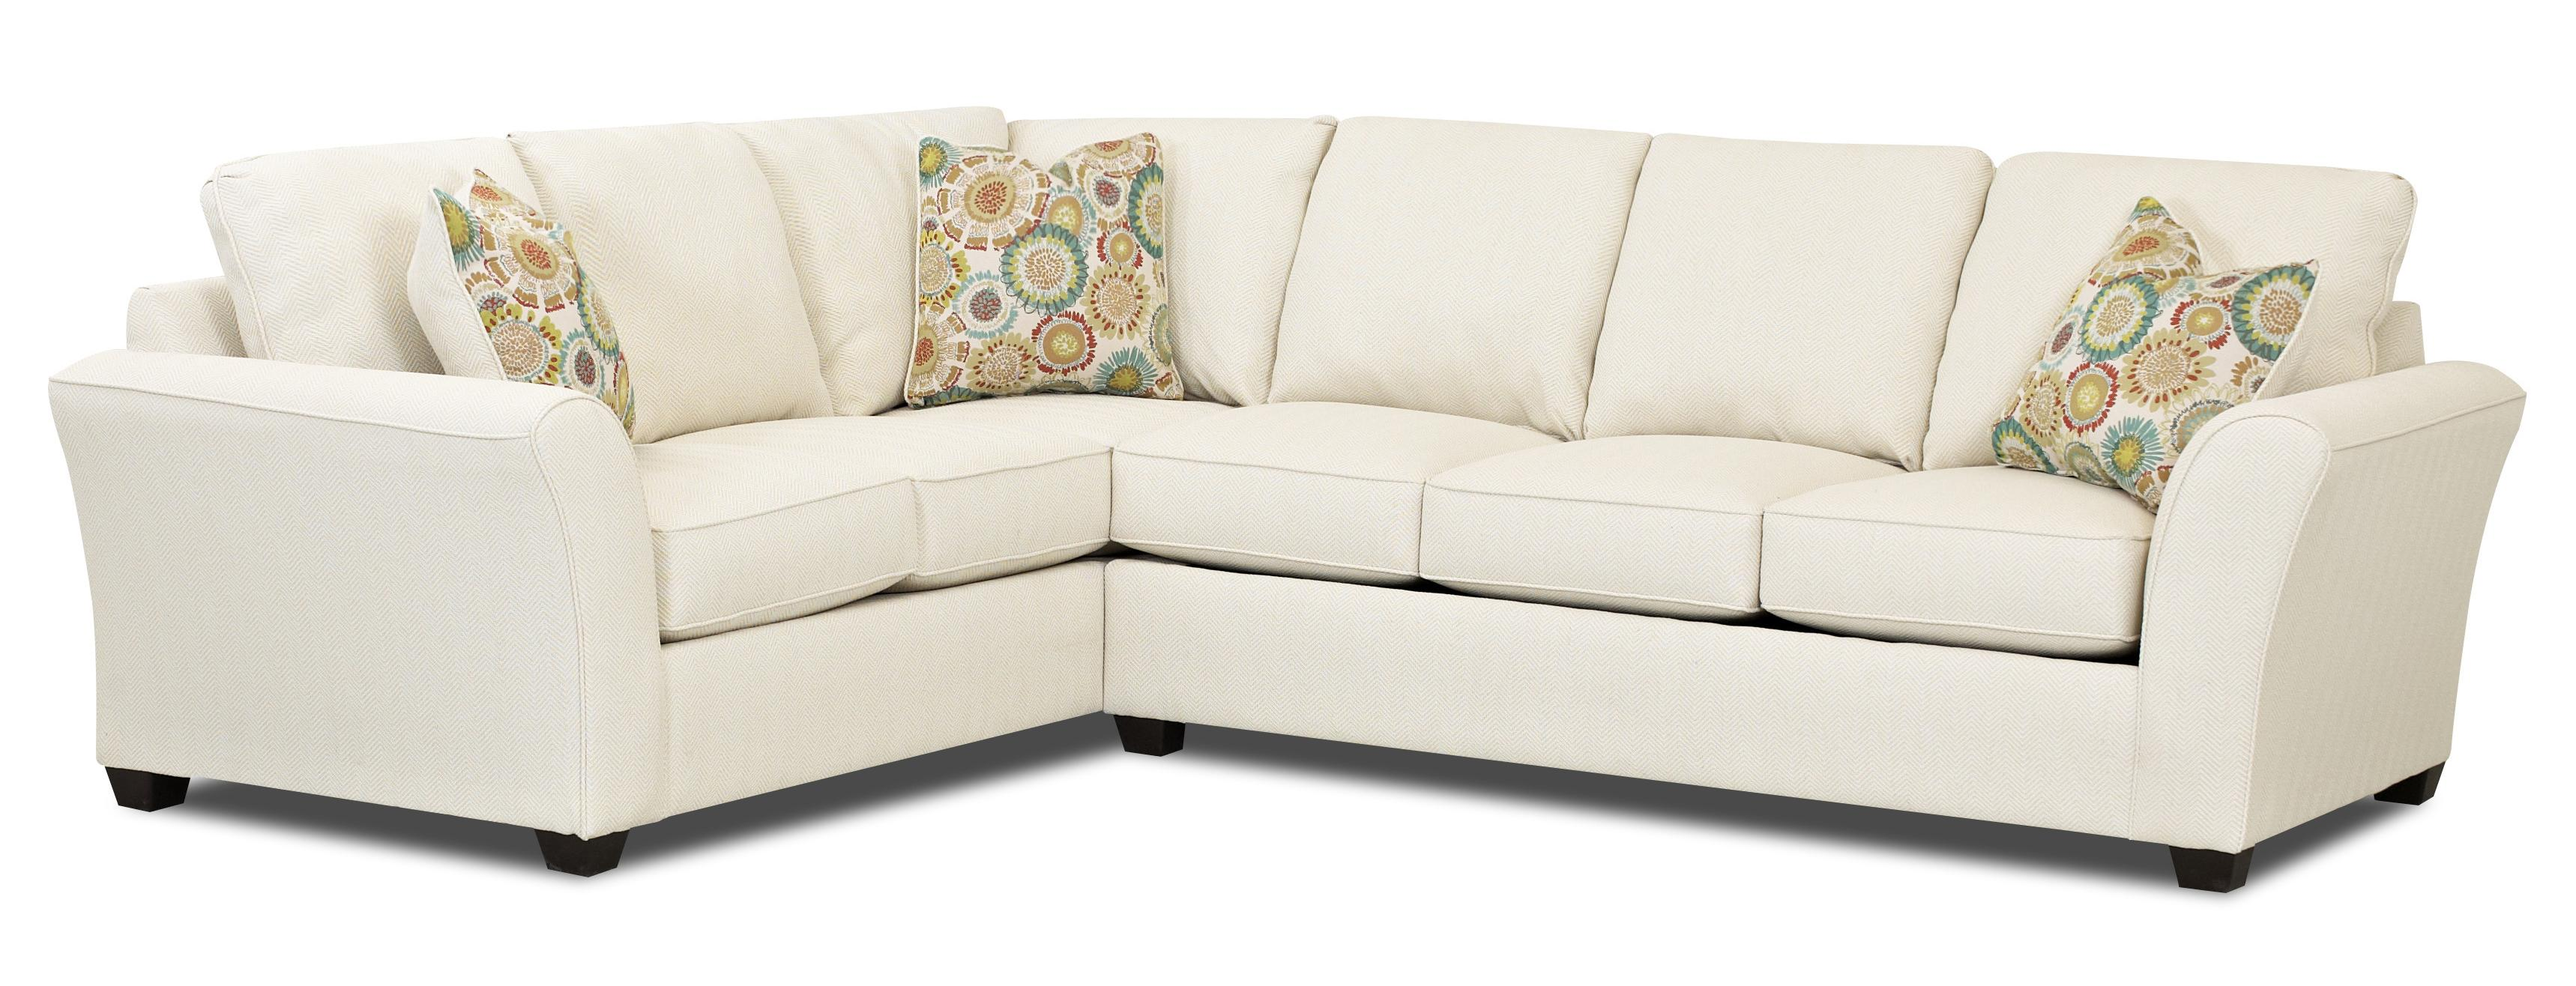 Transitional Sectional Sleeper Sofa with Dreamquest Mattress · Transitional 2 Piece ...  sc 1 st  Wolf Furniture : 2 piece sectional sleeper - Sectionals, Sofas & Couches